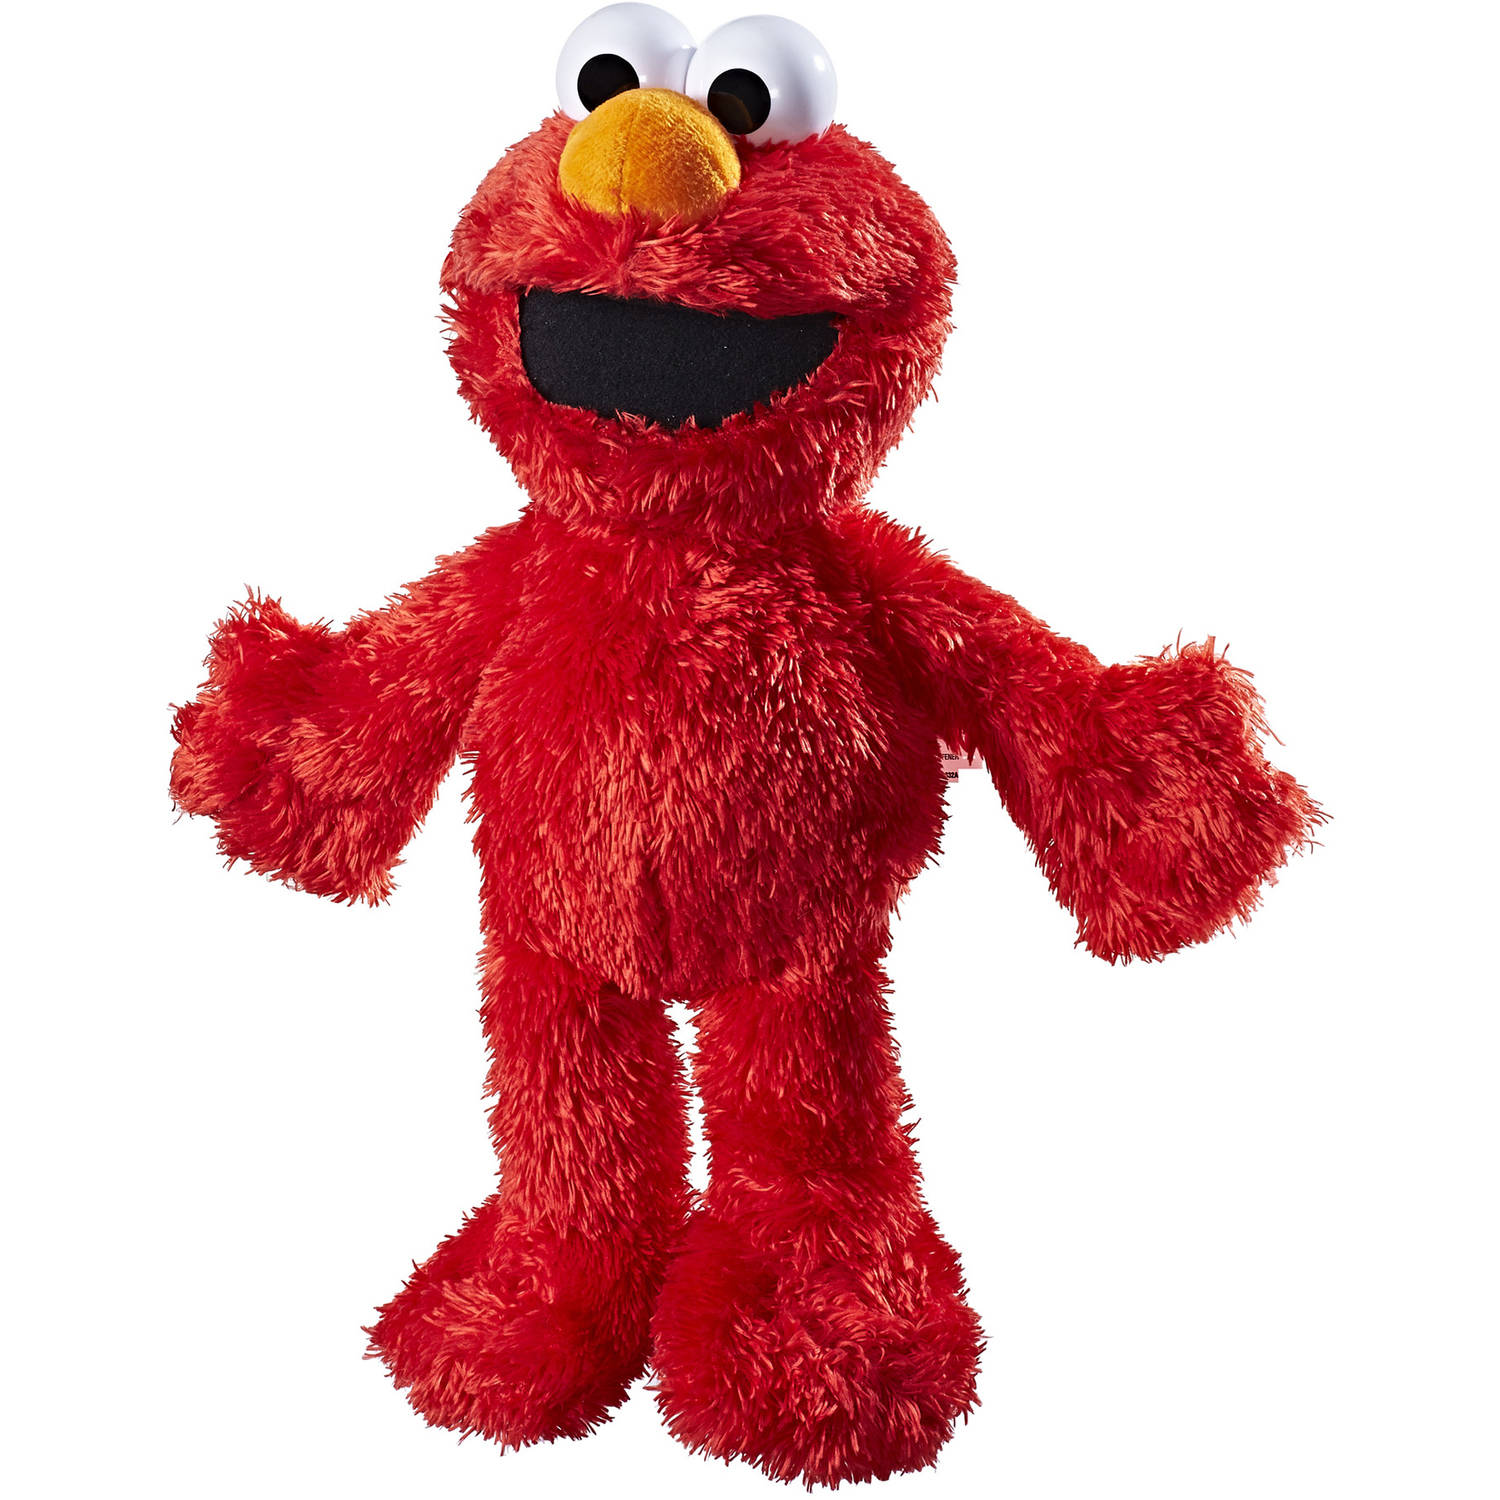 Playskool Friends Sesame Street Tickle Me Elmo by Hasbro